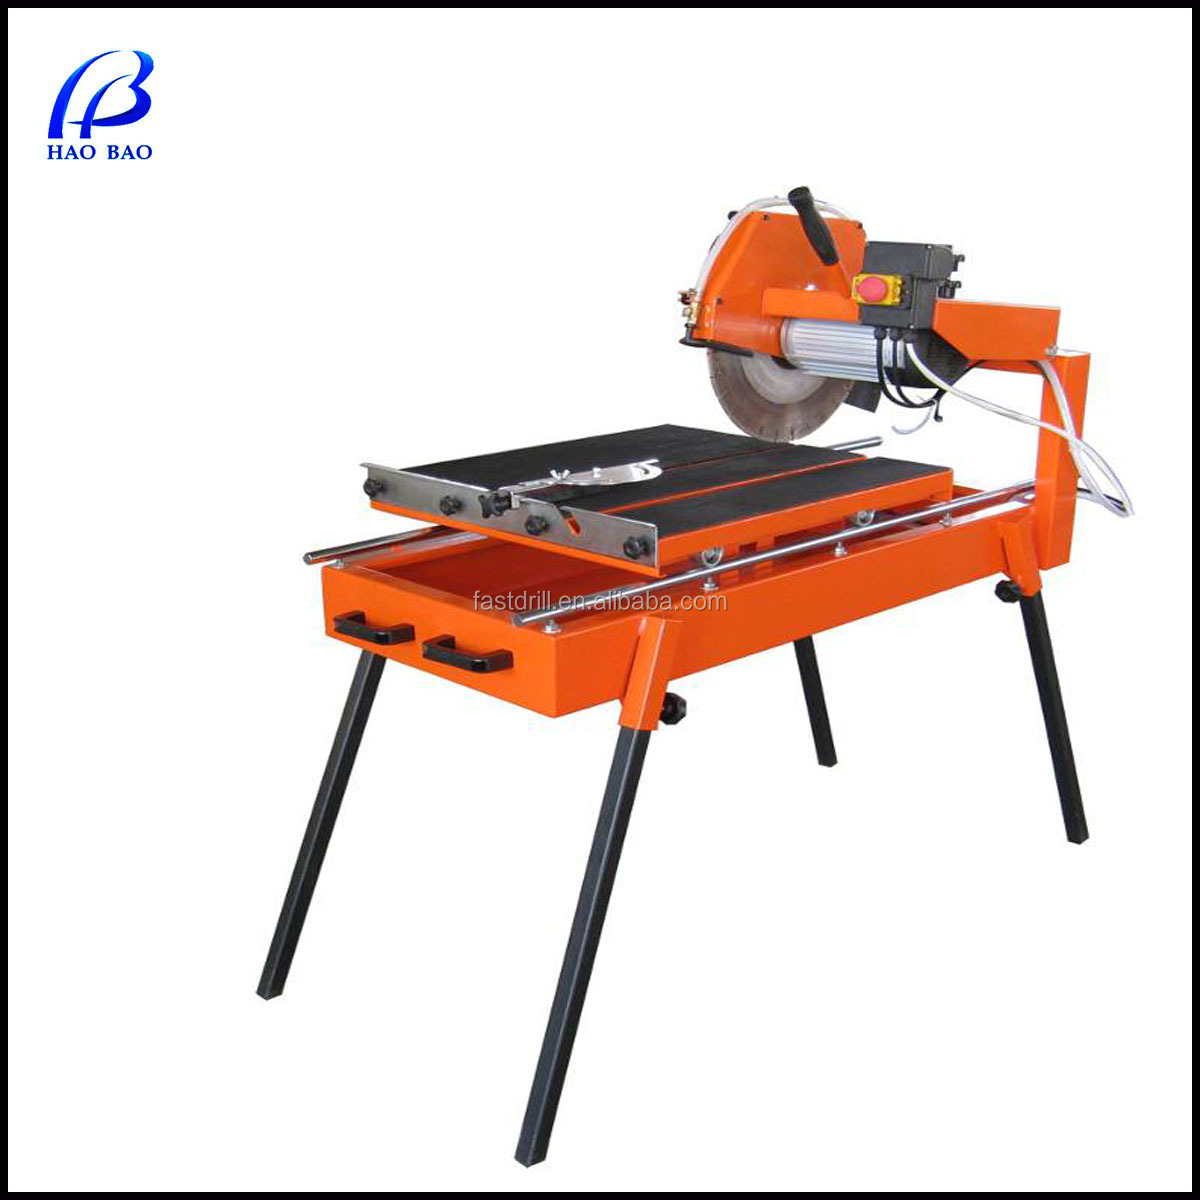 Water jet ceramic tile cutting machine water jet ceramic tile water jet ceramic tile cutting machine water jet ceramic tile cutting machine suppliers and manufacturers at alibaba dailygadgetfo Images